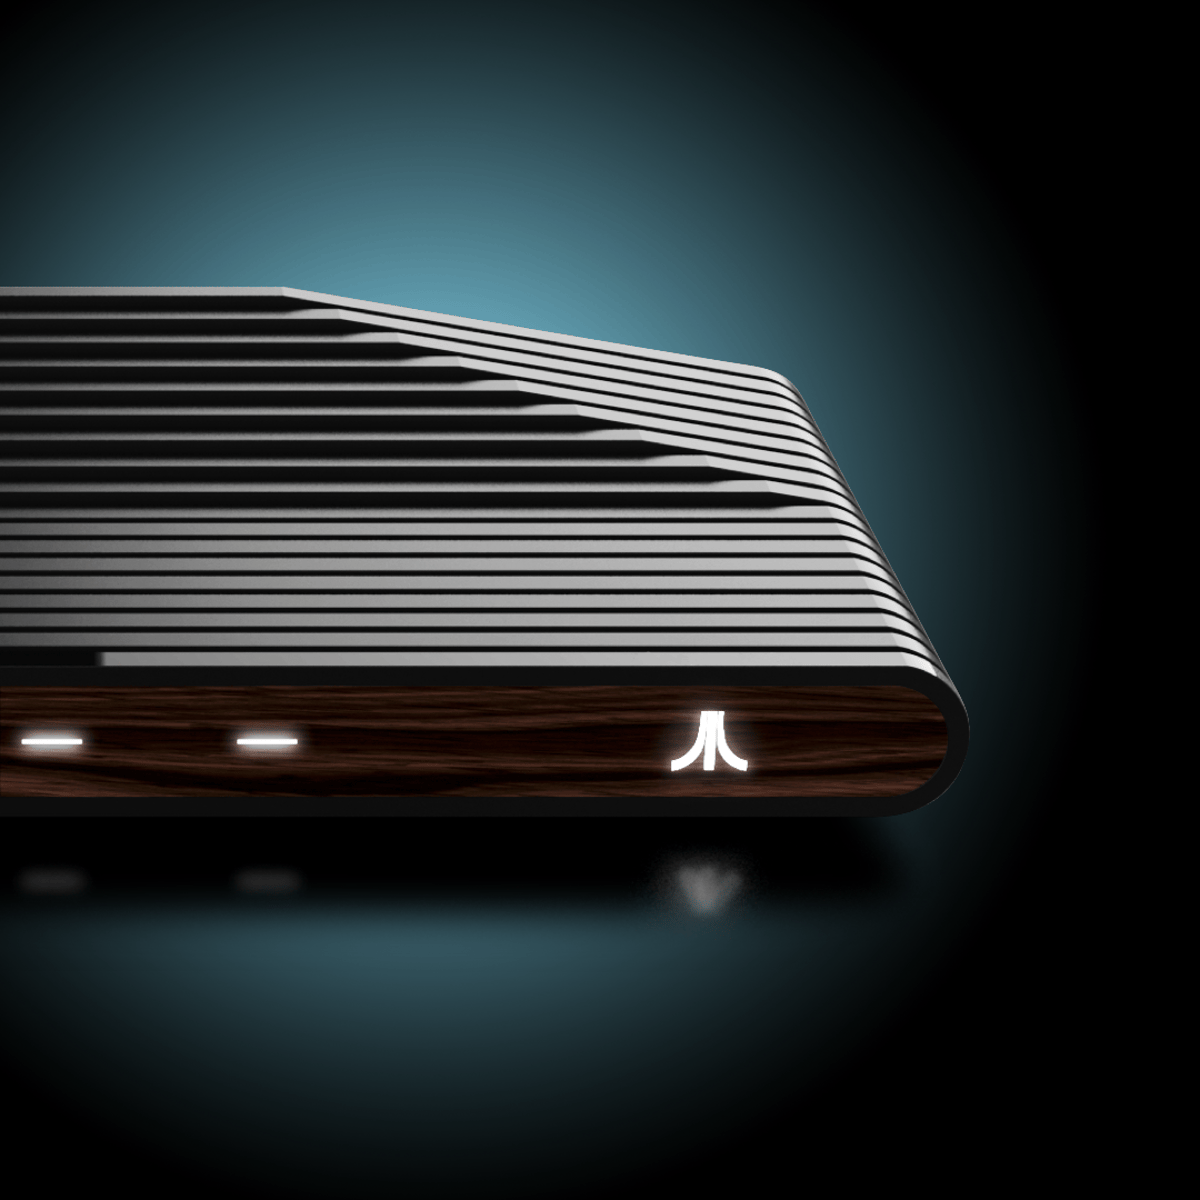 Atari has released a few new details about its upcoming console, the Atari VCS, ahead of a full reveal at the end of the month